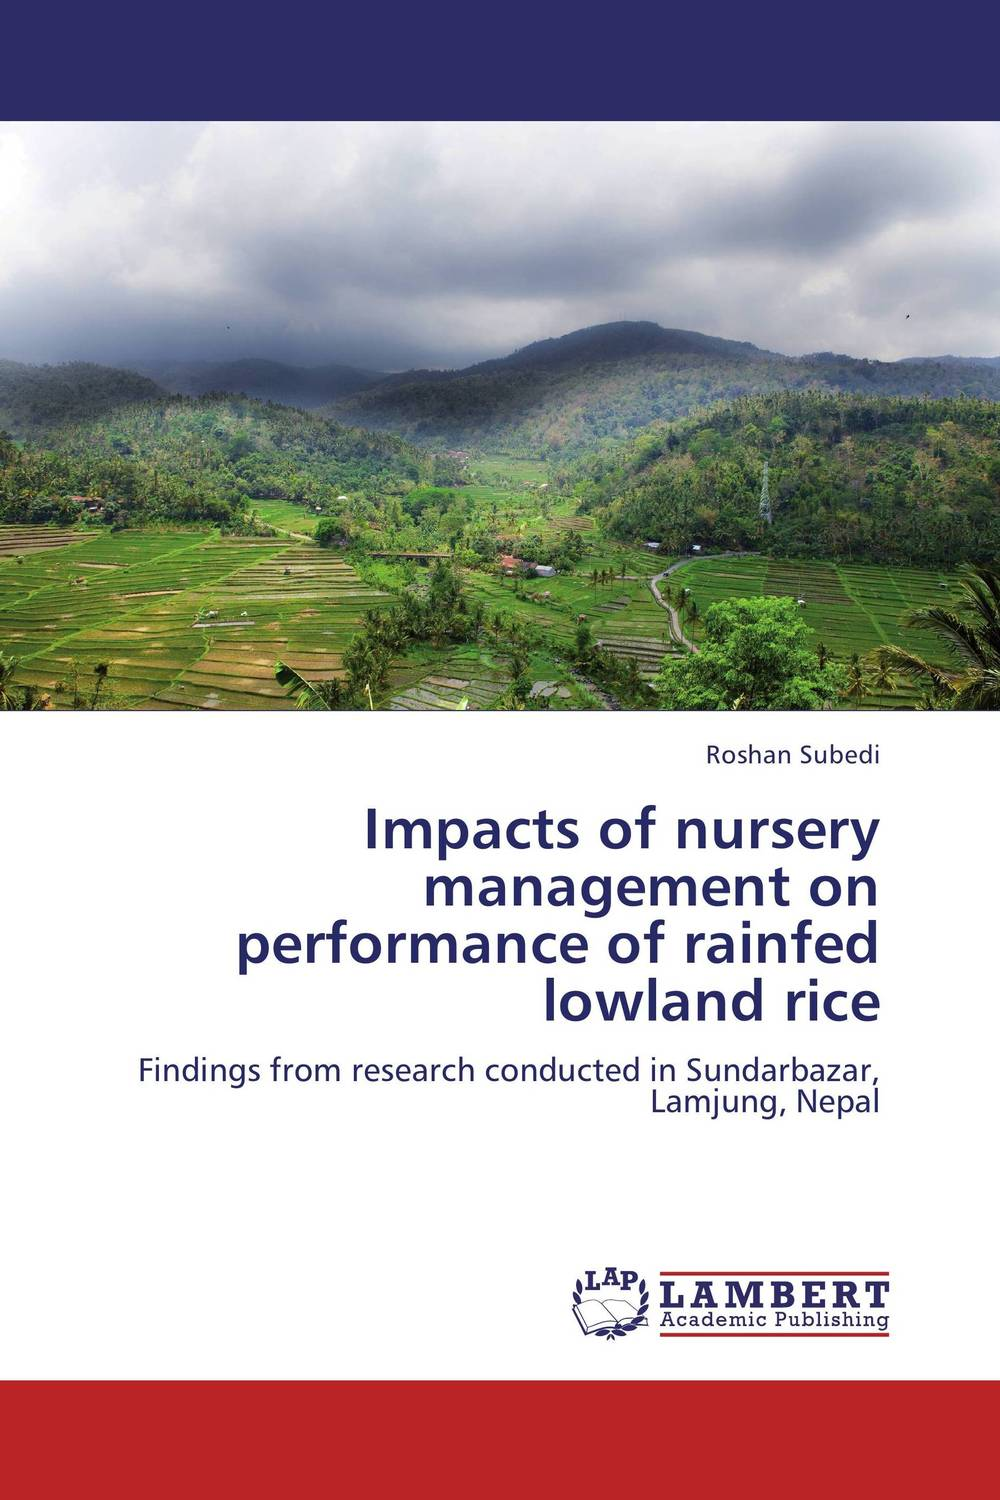 Impacts of nursery management on performance of rainfed lowland rice evaluation of the nutritive value of cowpea seeds in poultry feed